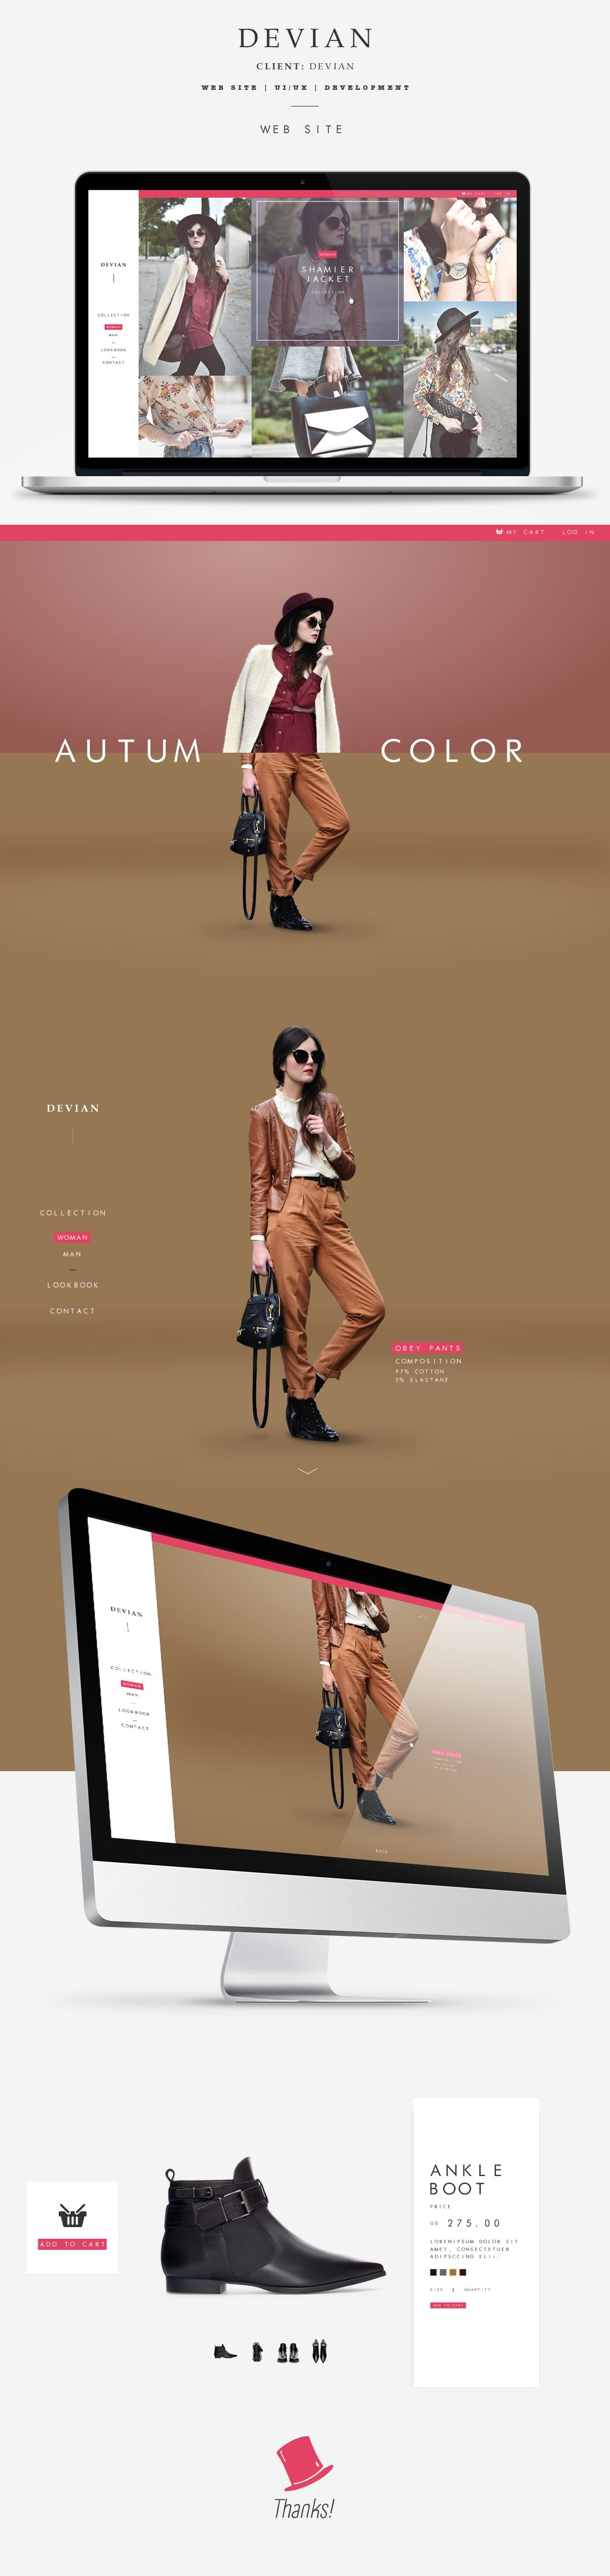 devian – web design inspiration